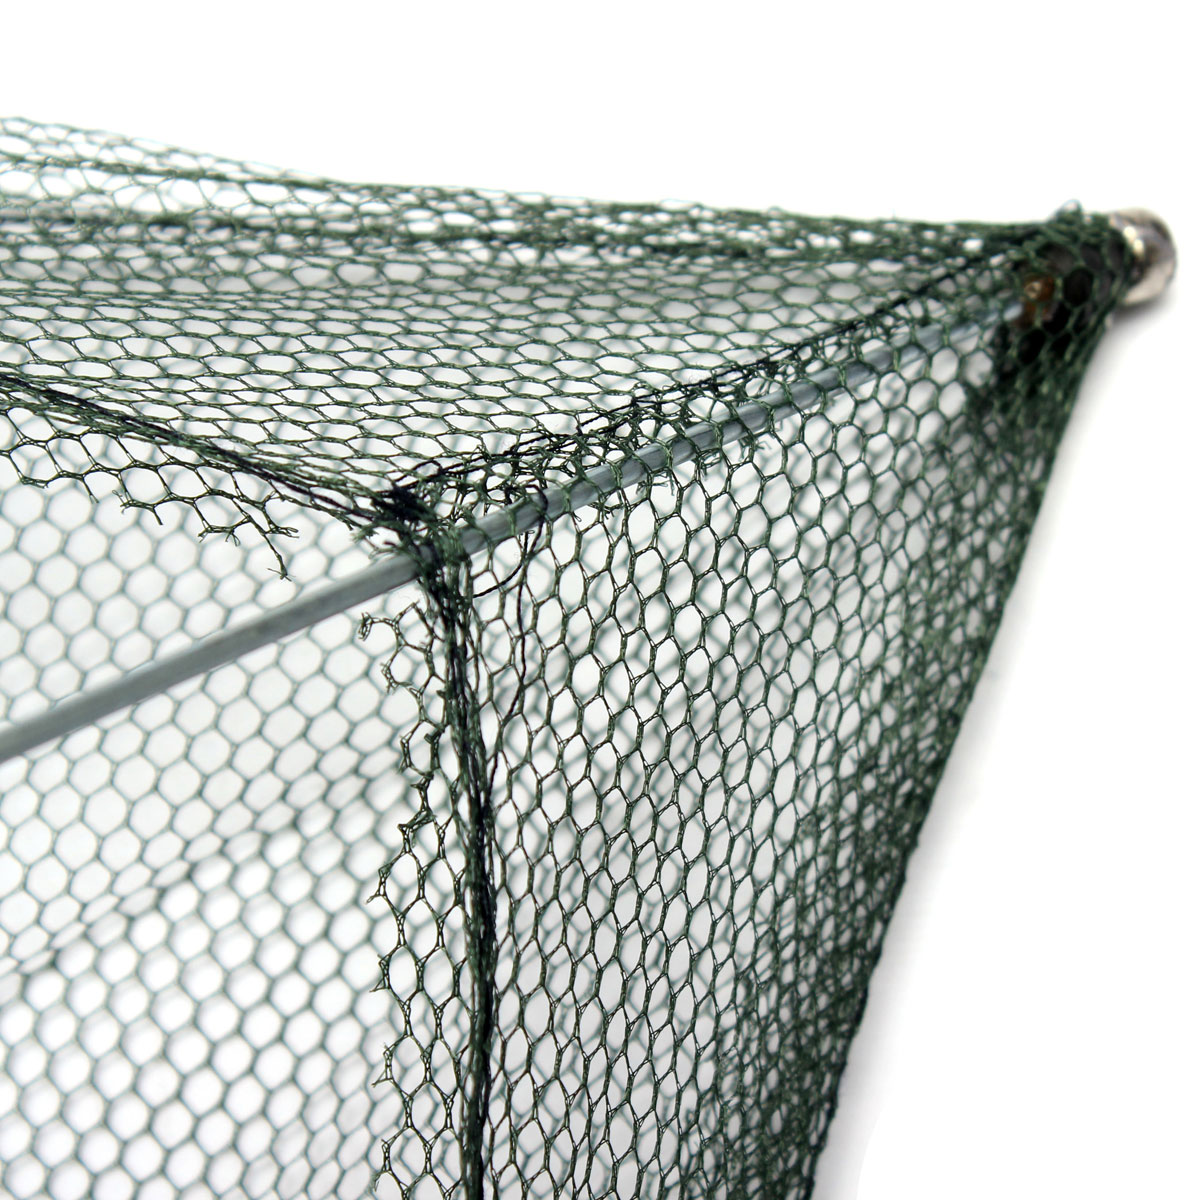 ZANLURE 80cmx80cm Foldable Crab Fish Crawdad Shrimp Minnow Fishing Bait Trap Cast Net